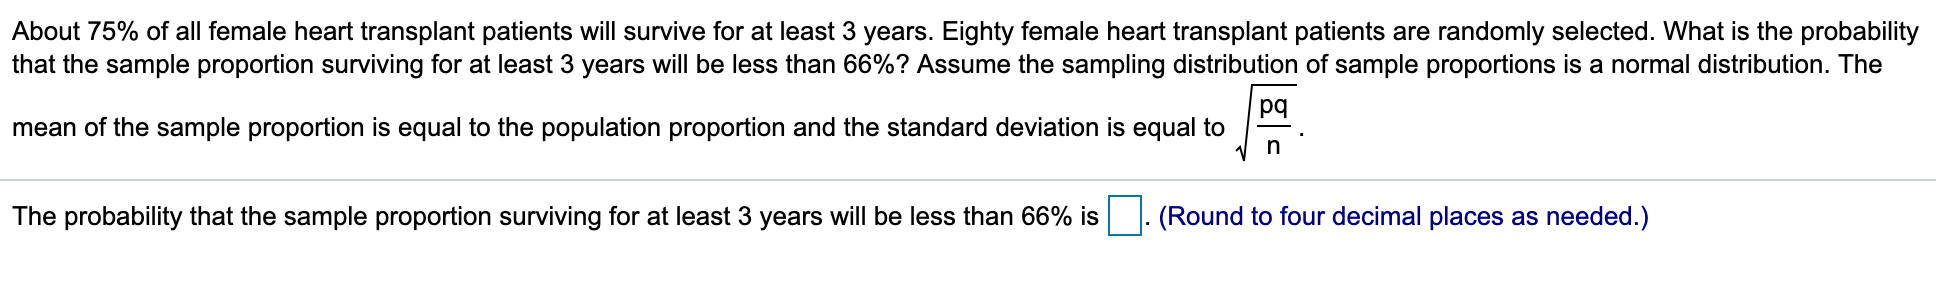 About 75% of all female heart transplant patients will survive for at least 3 years. Eighty female heart transplant patients are randomly selected. What is the probability that the sample proportion surviving for at least 3 years will be less than 66%? Assume the sampling distribution of sample proportions is a normal distribution. The pq mean of the sample proportion is equal to the population proportion and the standard deviation is equal to The probability that the sample proportion surviving for at least 3 years will be less than 66% is (Round to four decimal places as needed.)